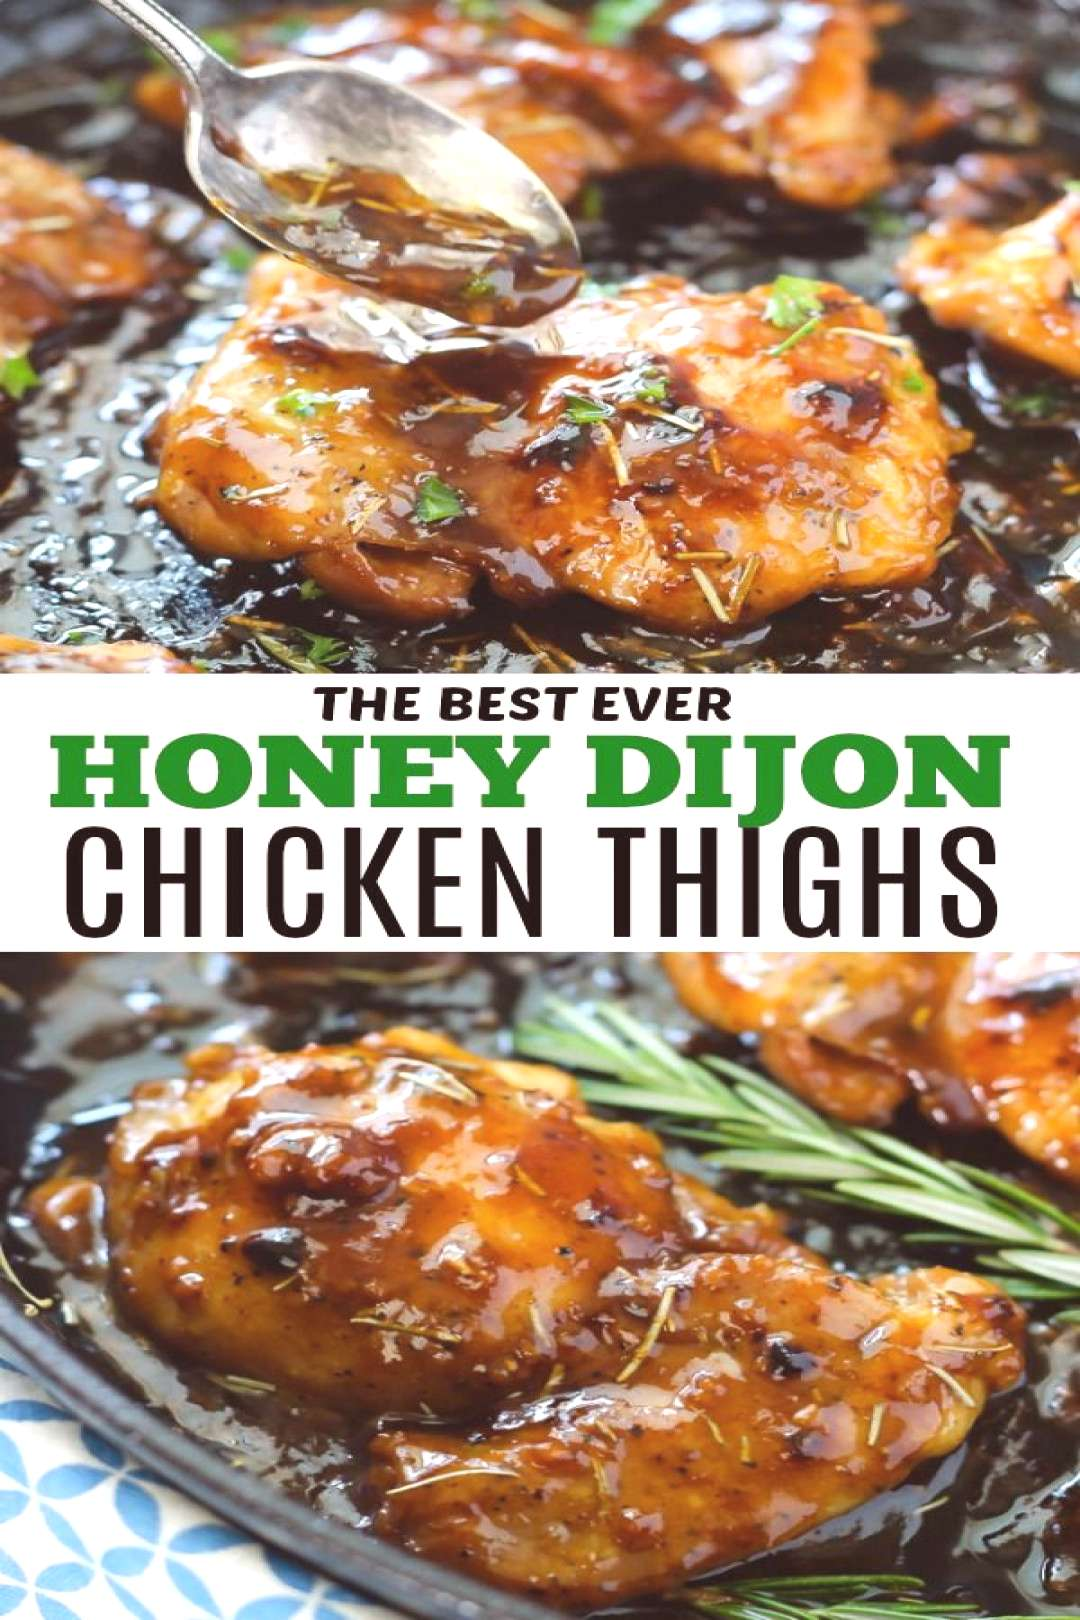 Honey Dijon Chicken Thighs make an amazing dinner that youll want over and over again! So juicy an